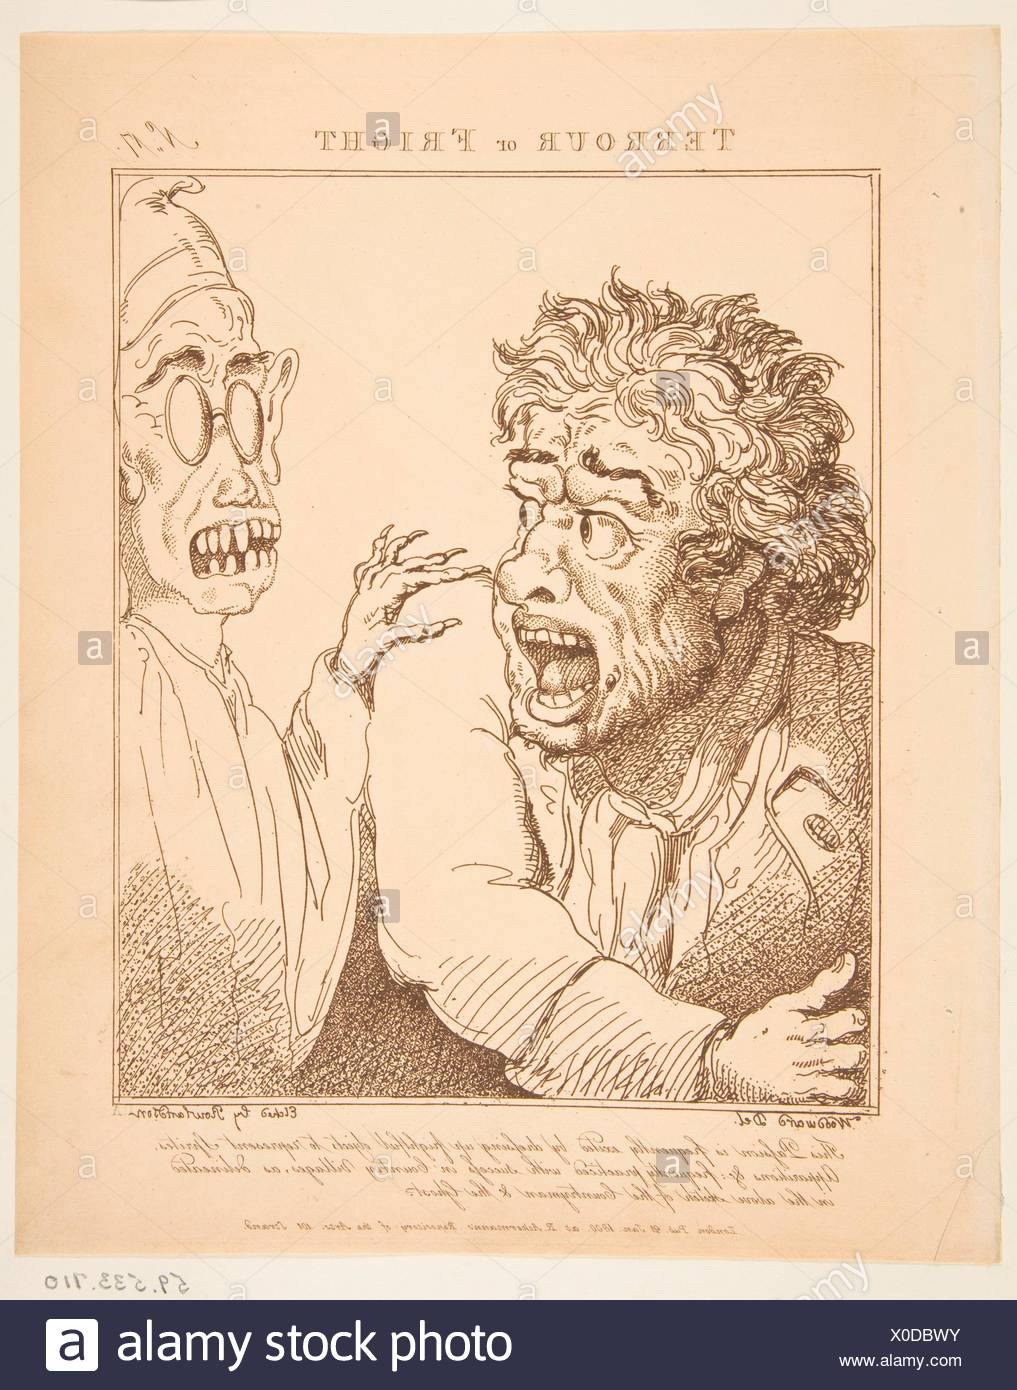 Terrour or Fright (Le Brun Travested, or Caricatures of the Passions). Series/Portfolio: Le Brun Travested, or Caricatures of the Passions; Etcher: - Stock Image